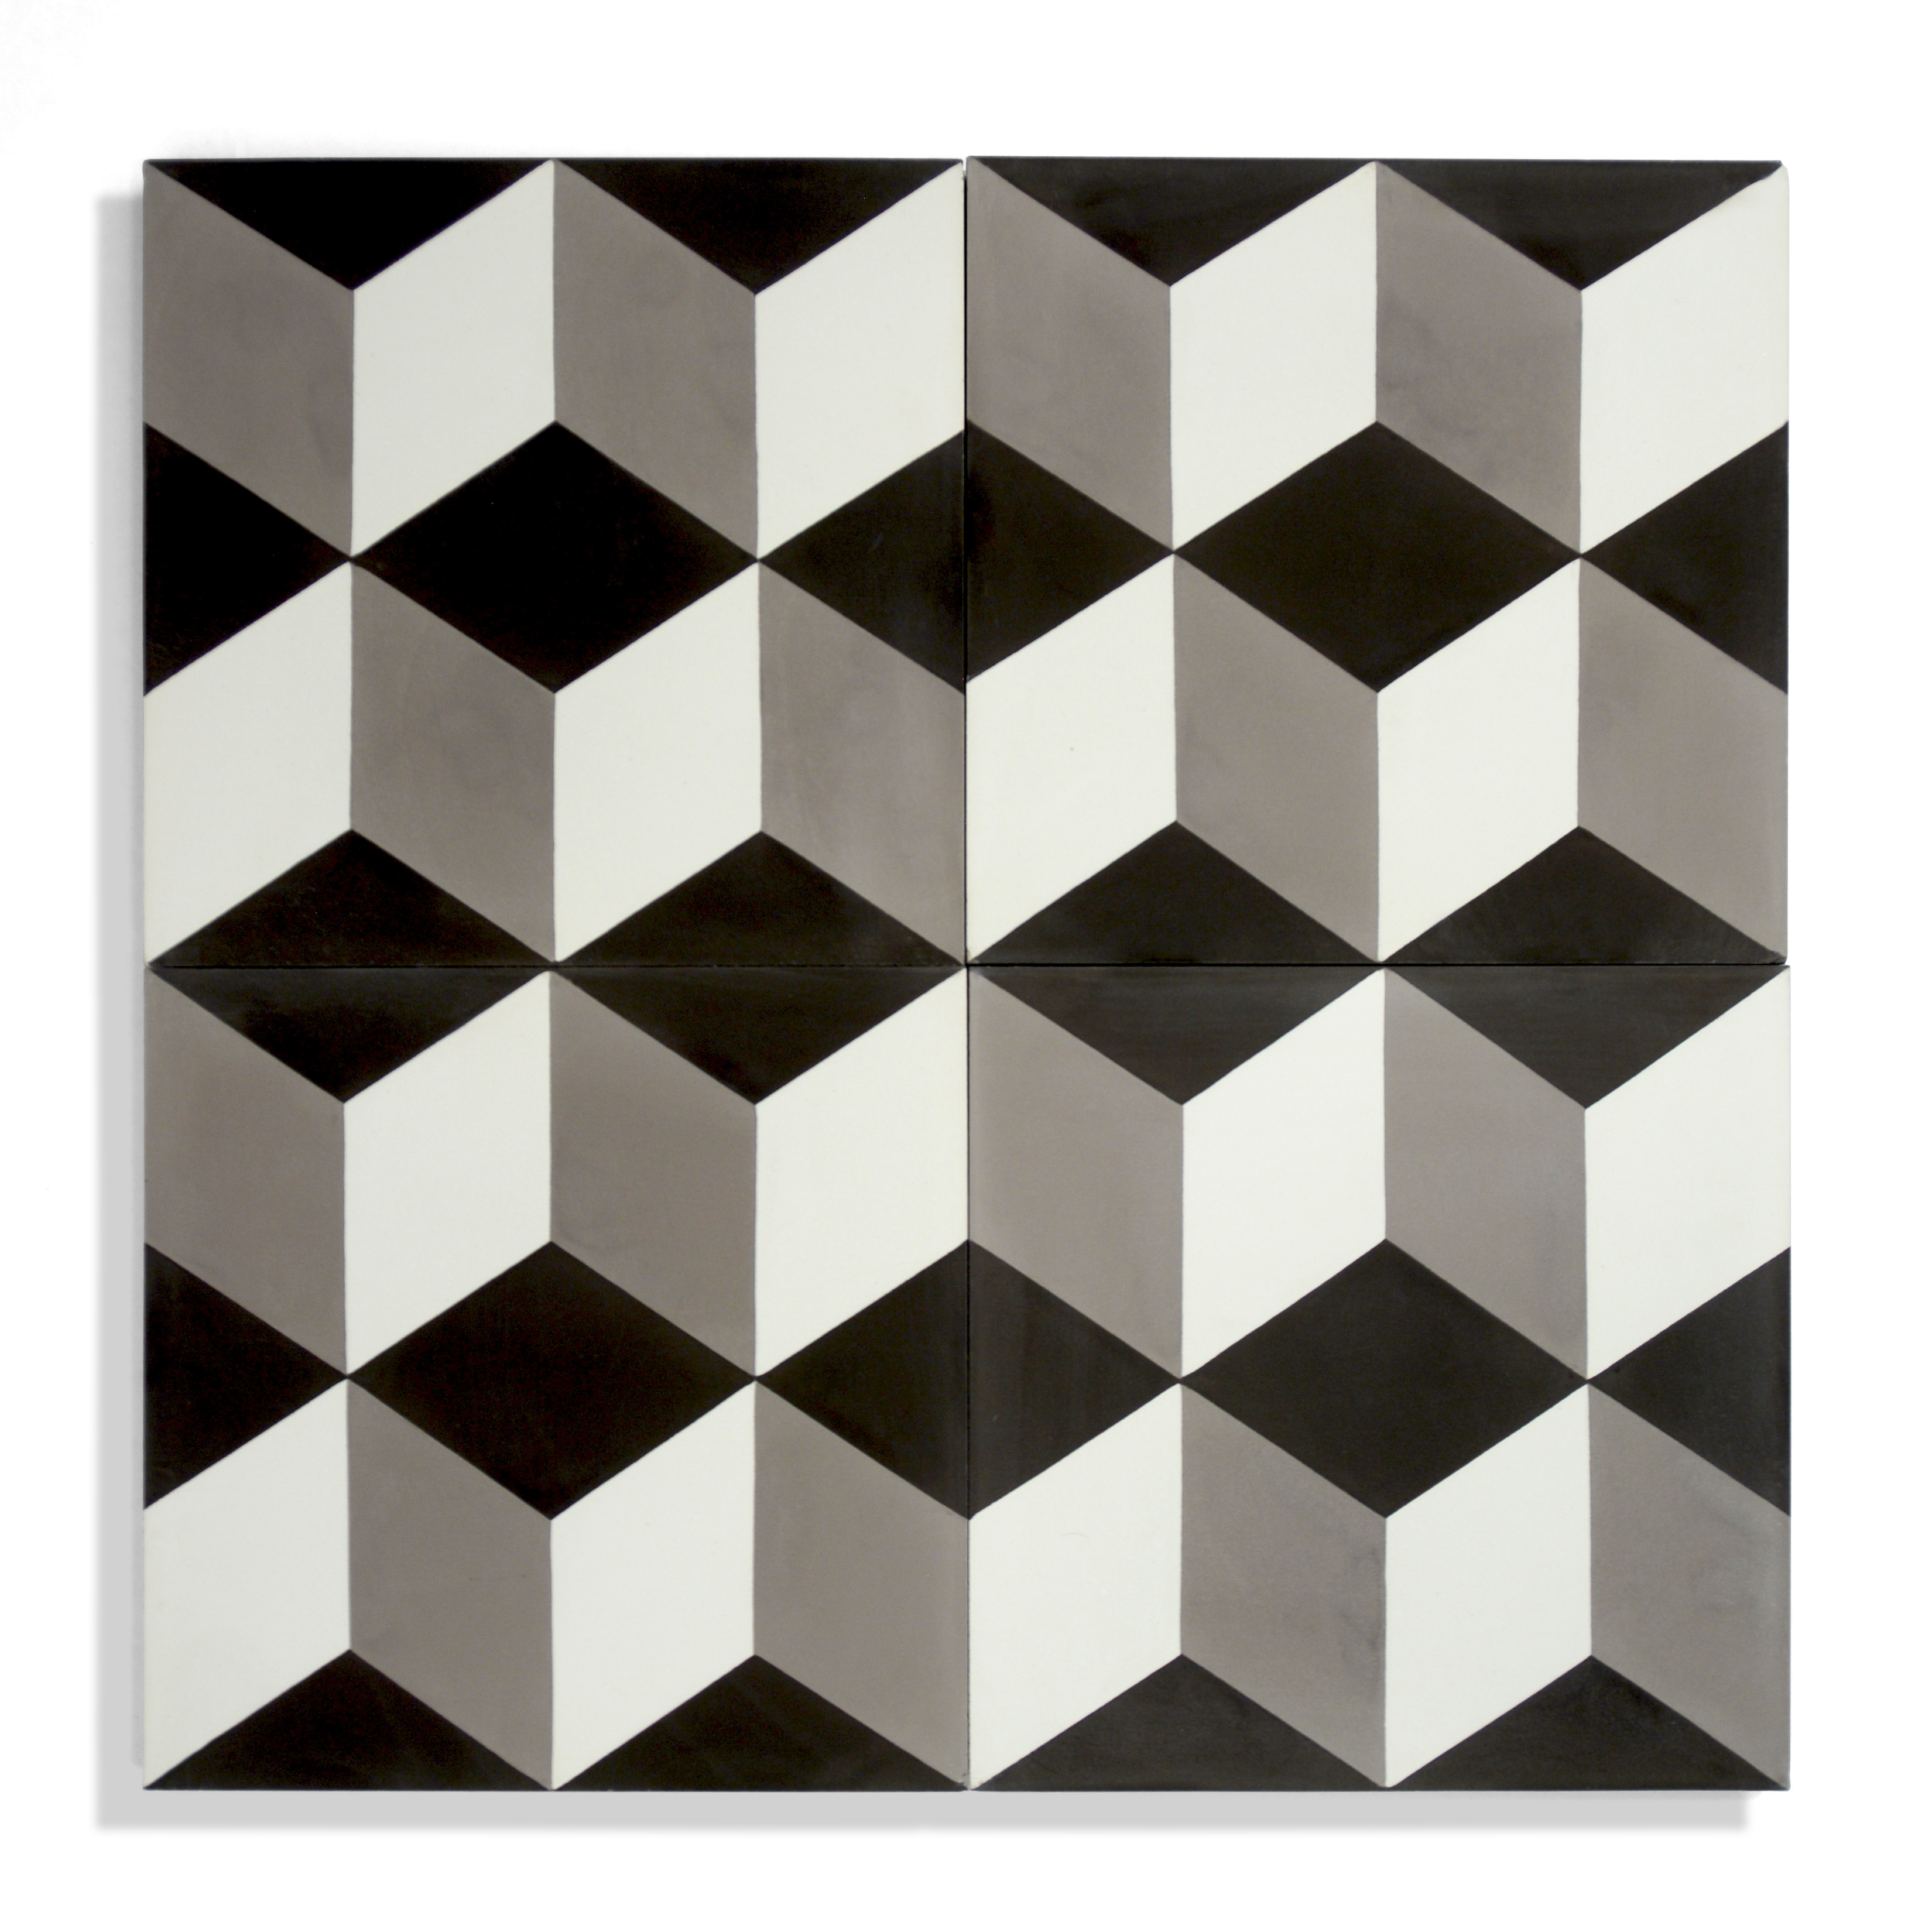 Escher Encaustic Cement Tile From Zia Tile Los Angeles